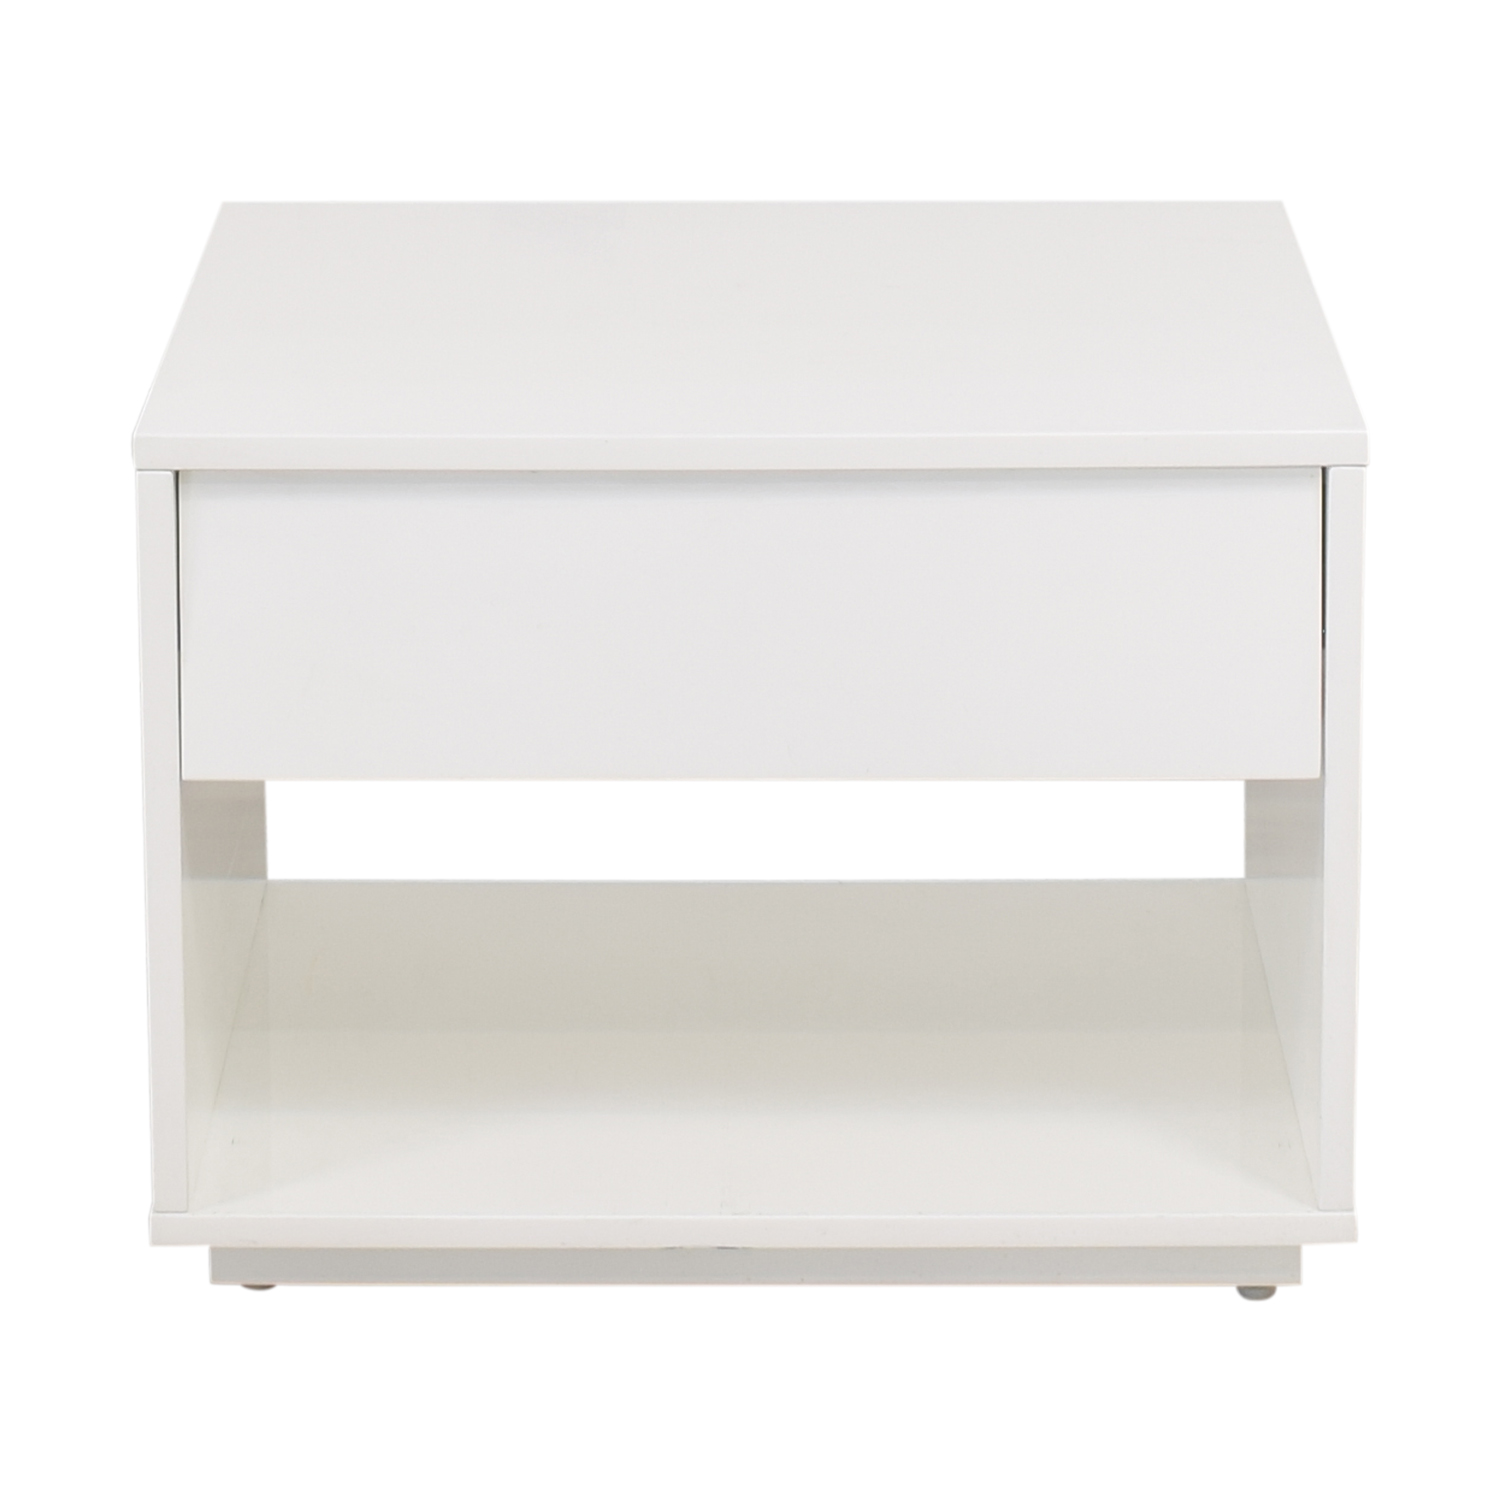 CB2 Shake Nightstand / End Tables